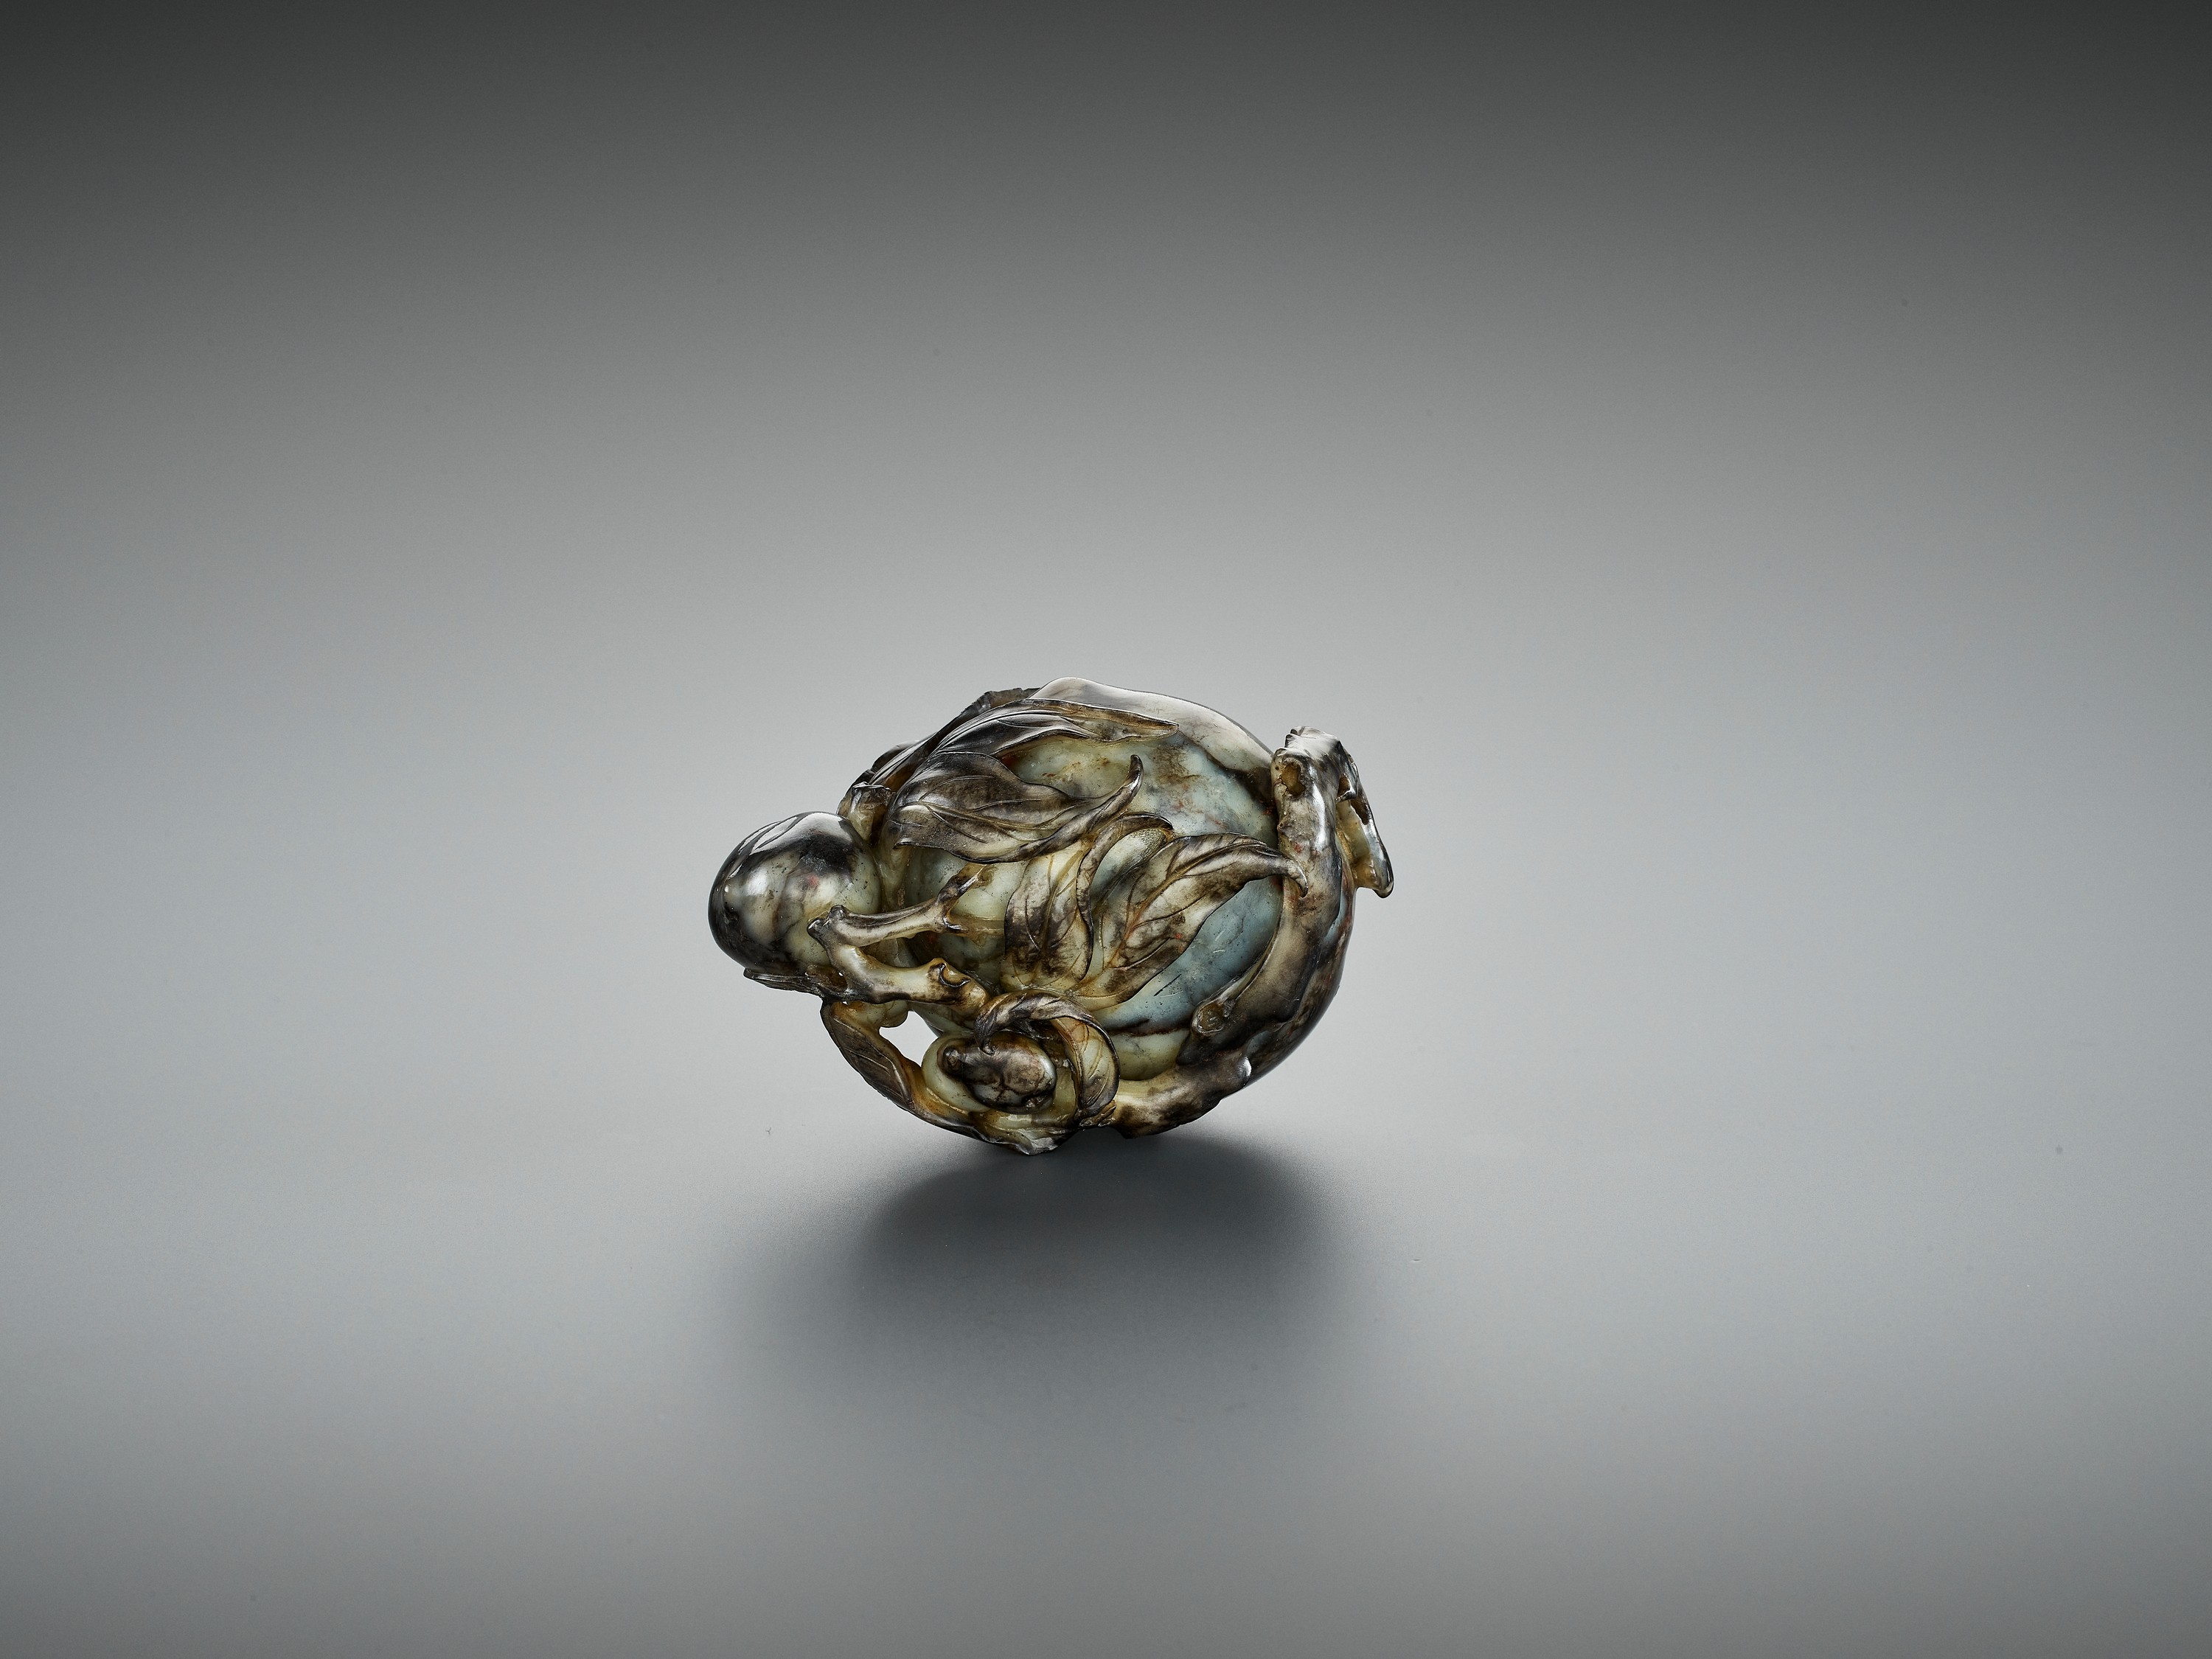 A 'PEACH' BRUSH WASHER, QING DYNASTY - Image 10 of 12